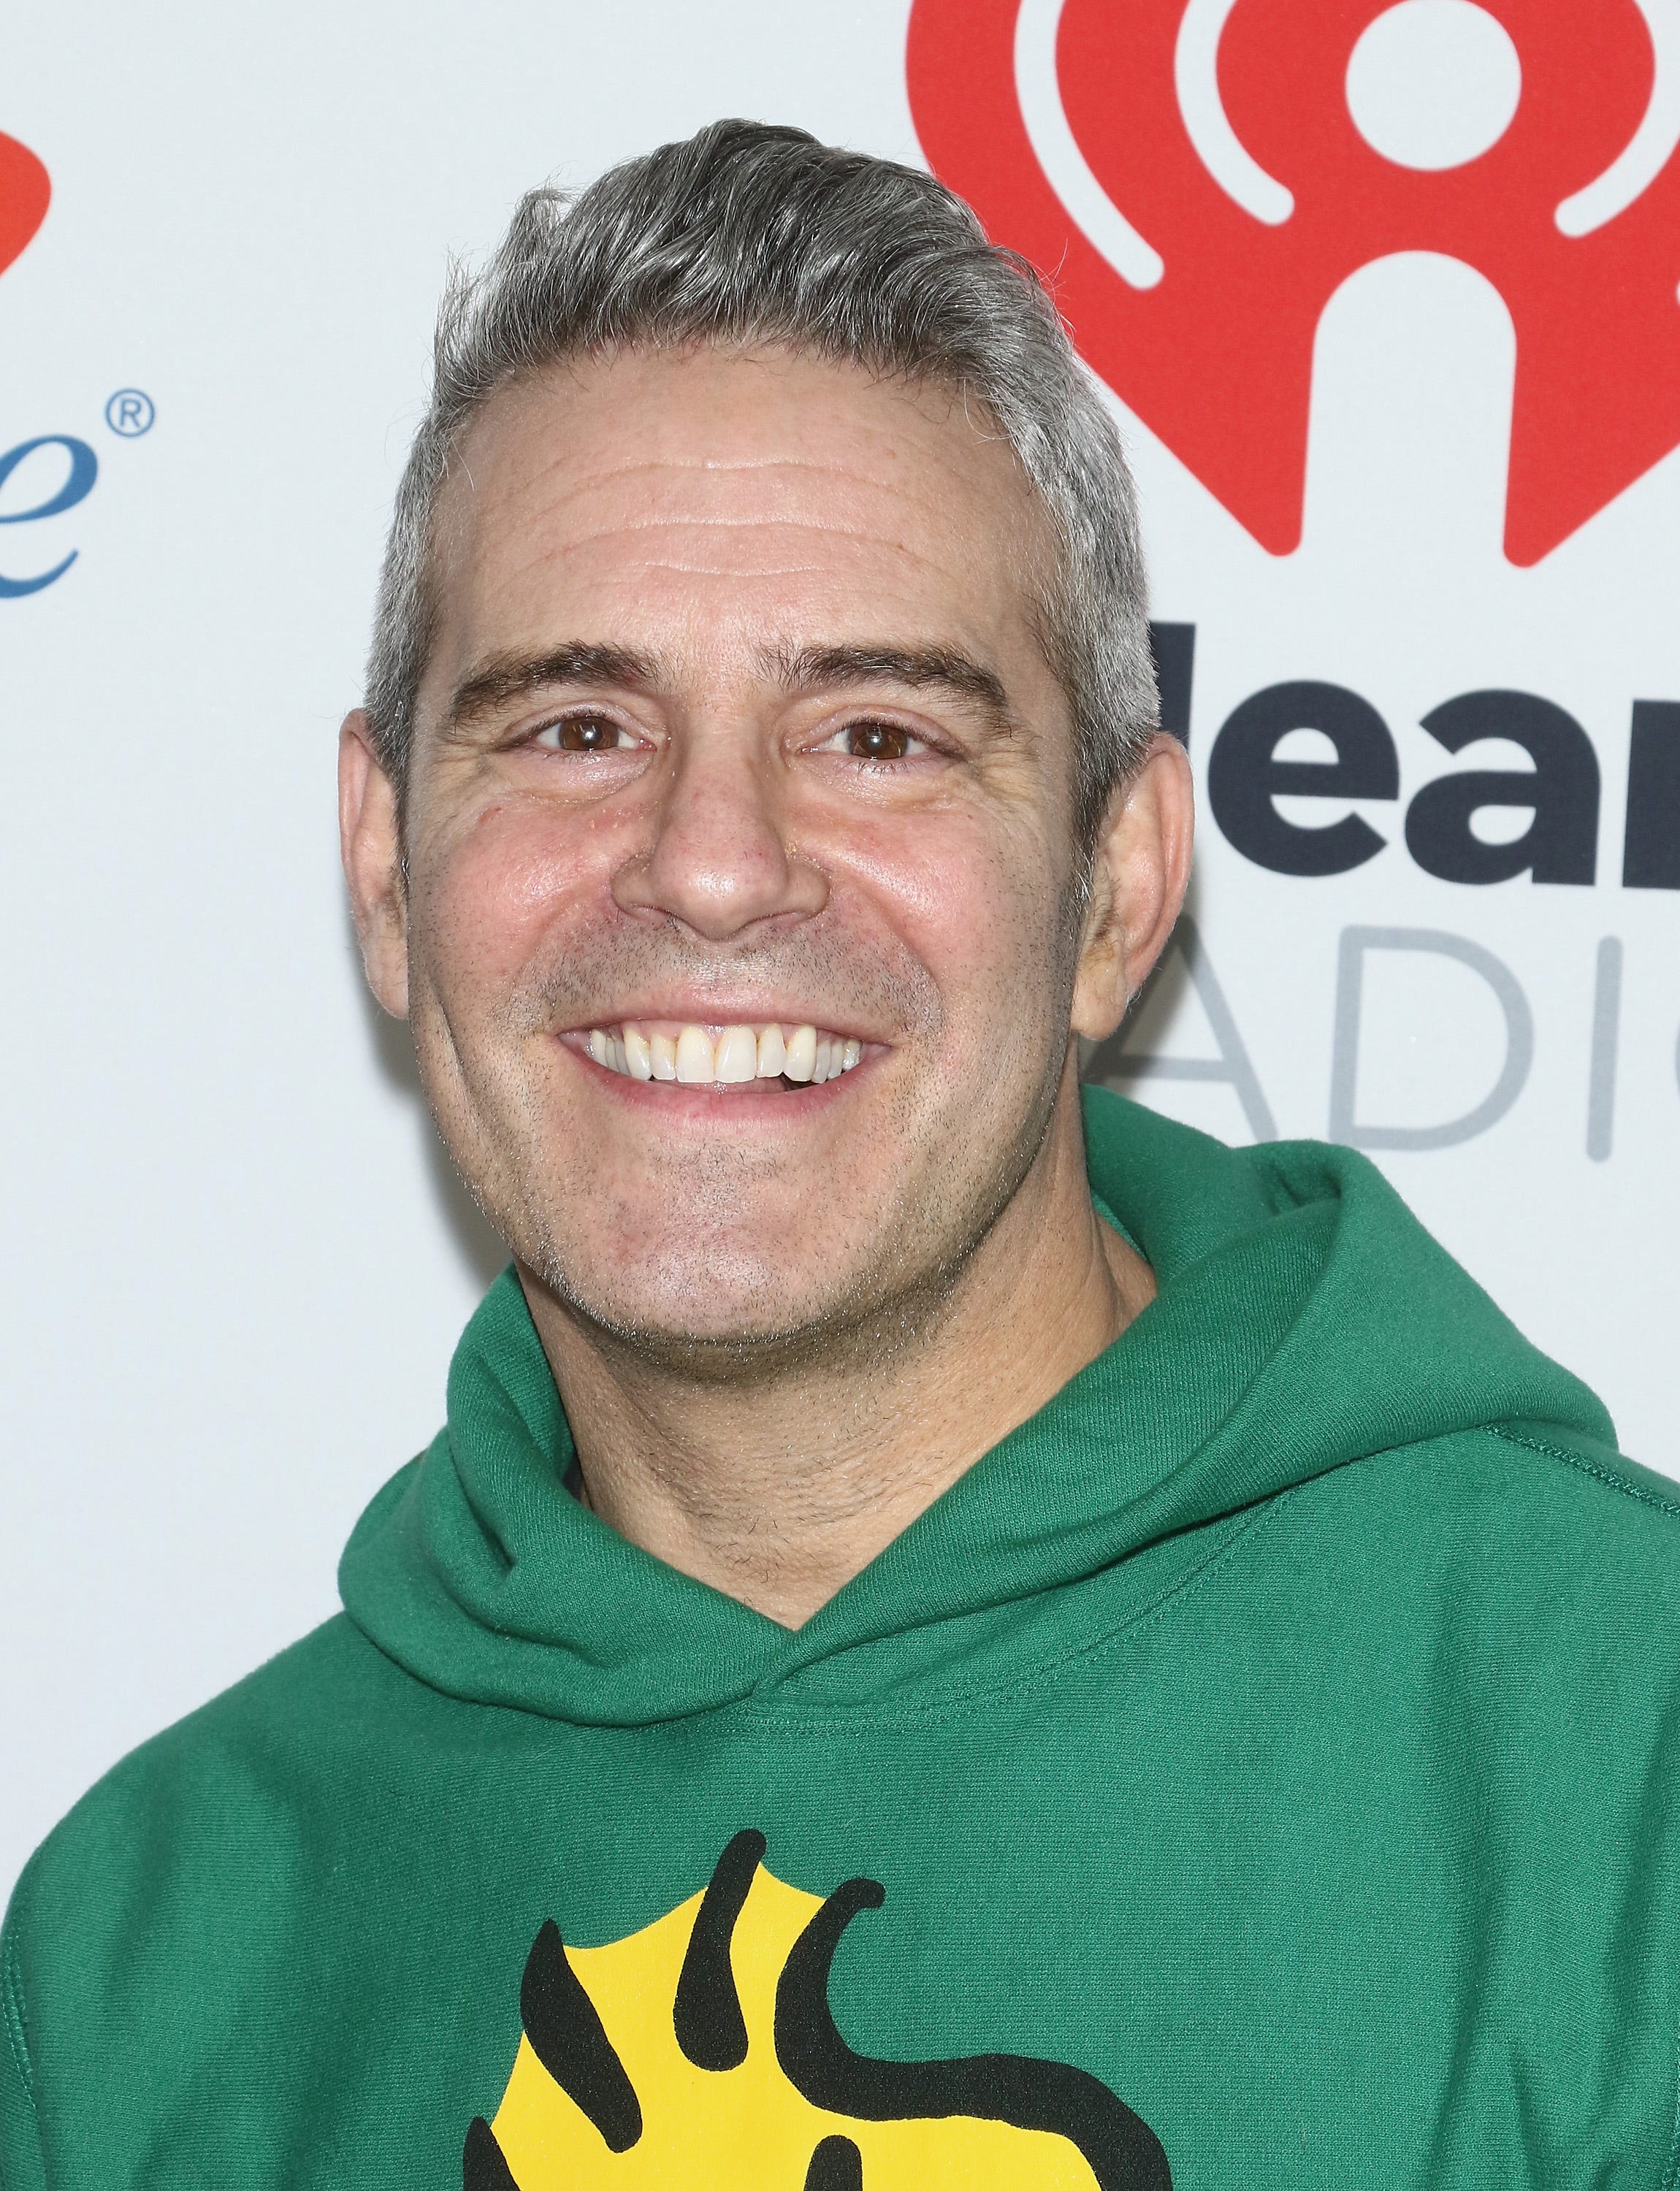 'I'm in love': Andy Cohen welcomes son Benjamin via surrogate